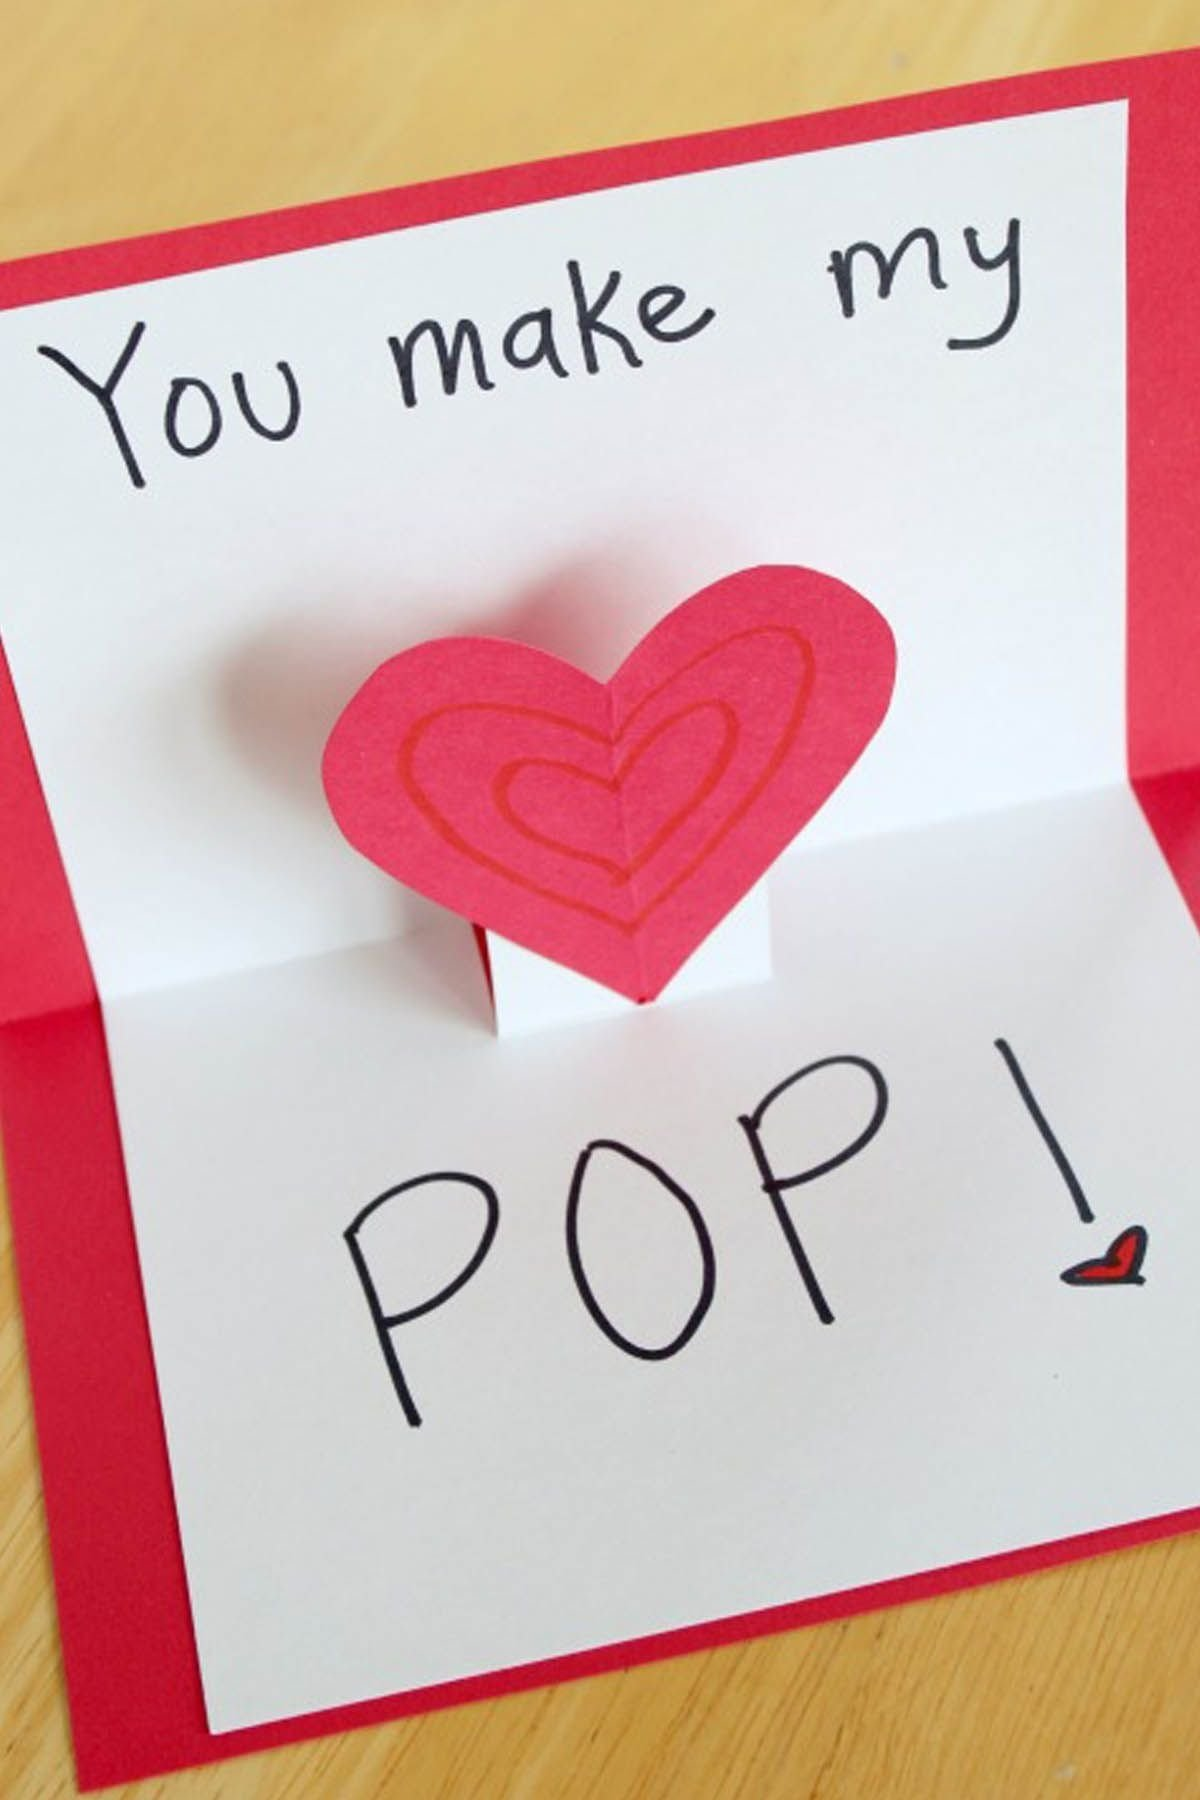 22 cute diy valentine's day cards - homemade card ideas for